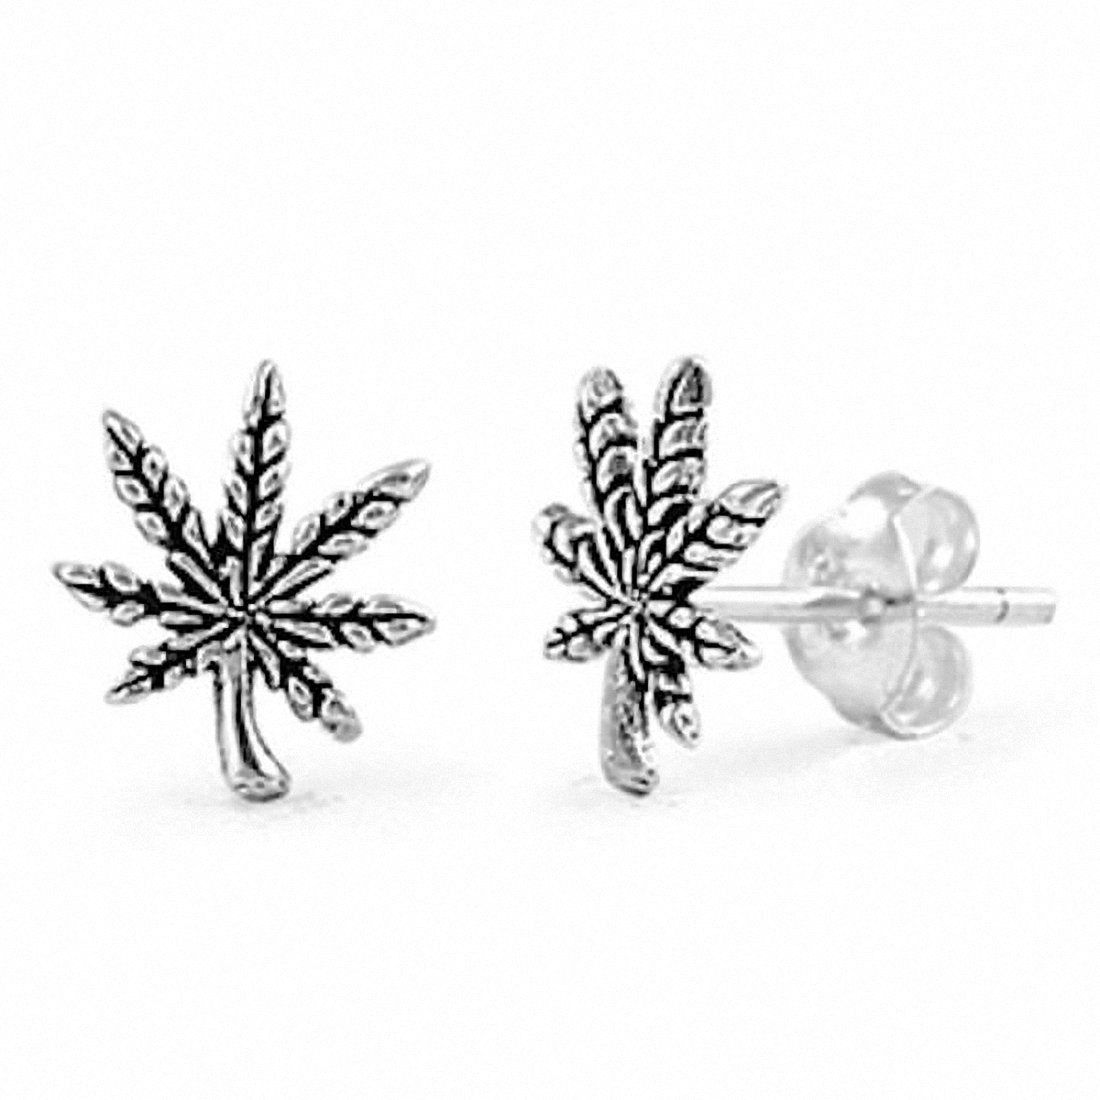 9mm Small Pot Leaf Solid 925 Sterling Silver Stud Post Earrings